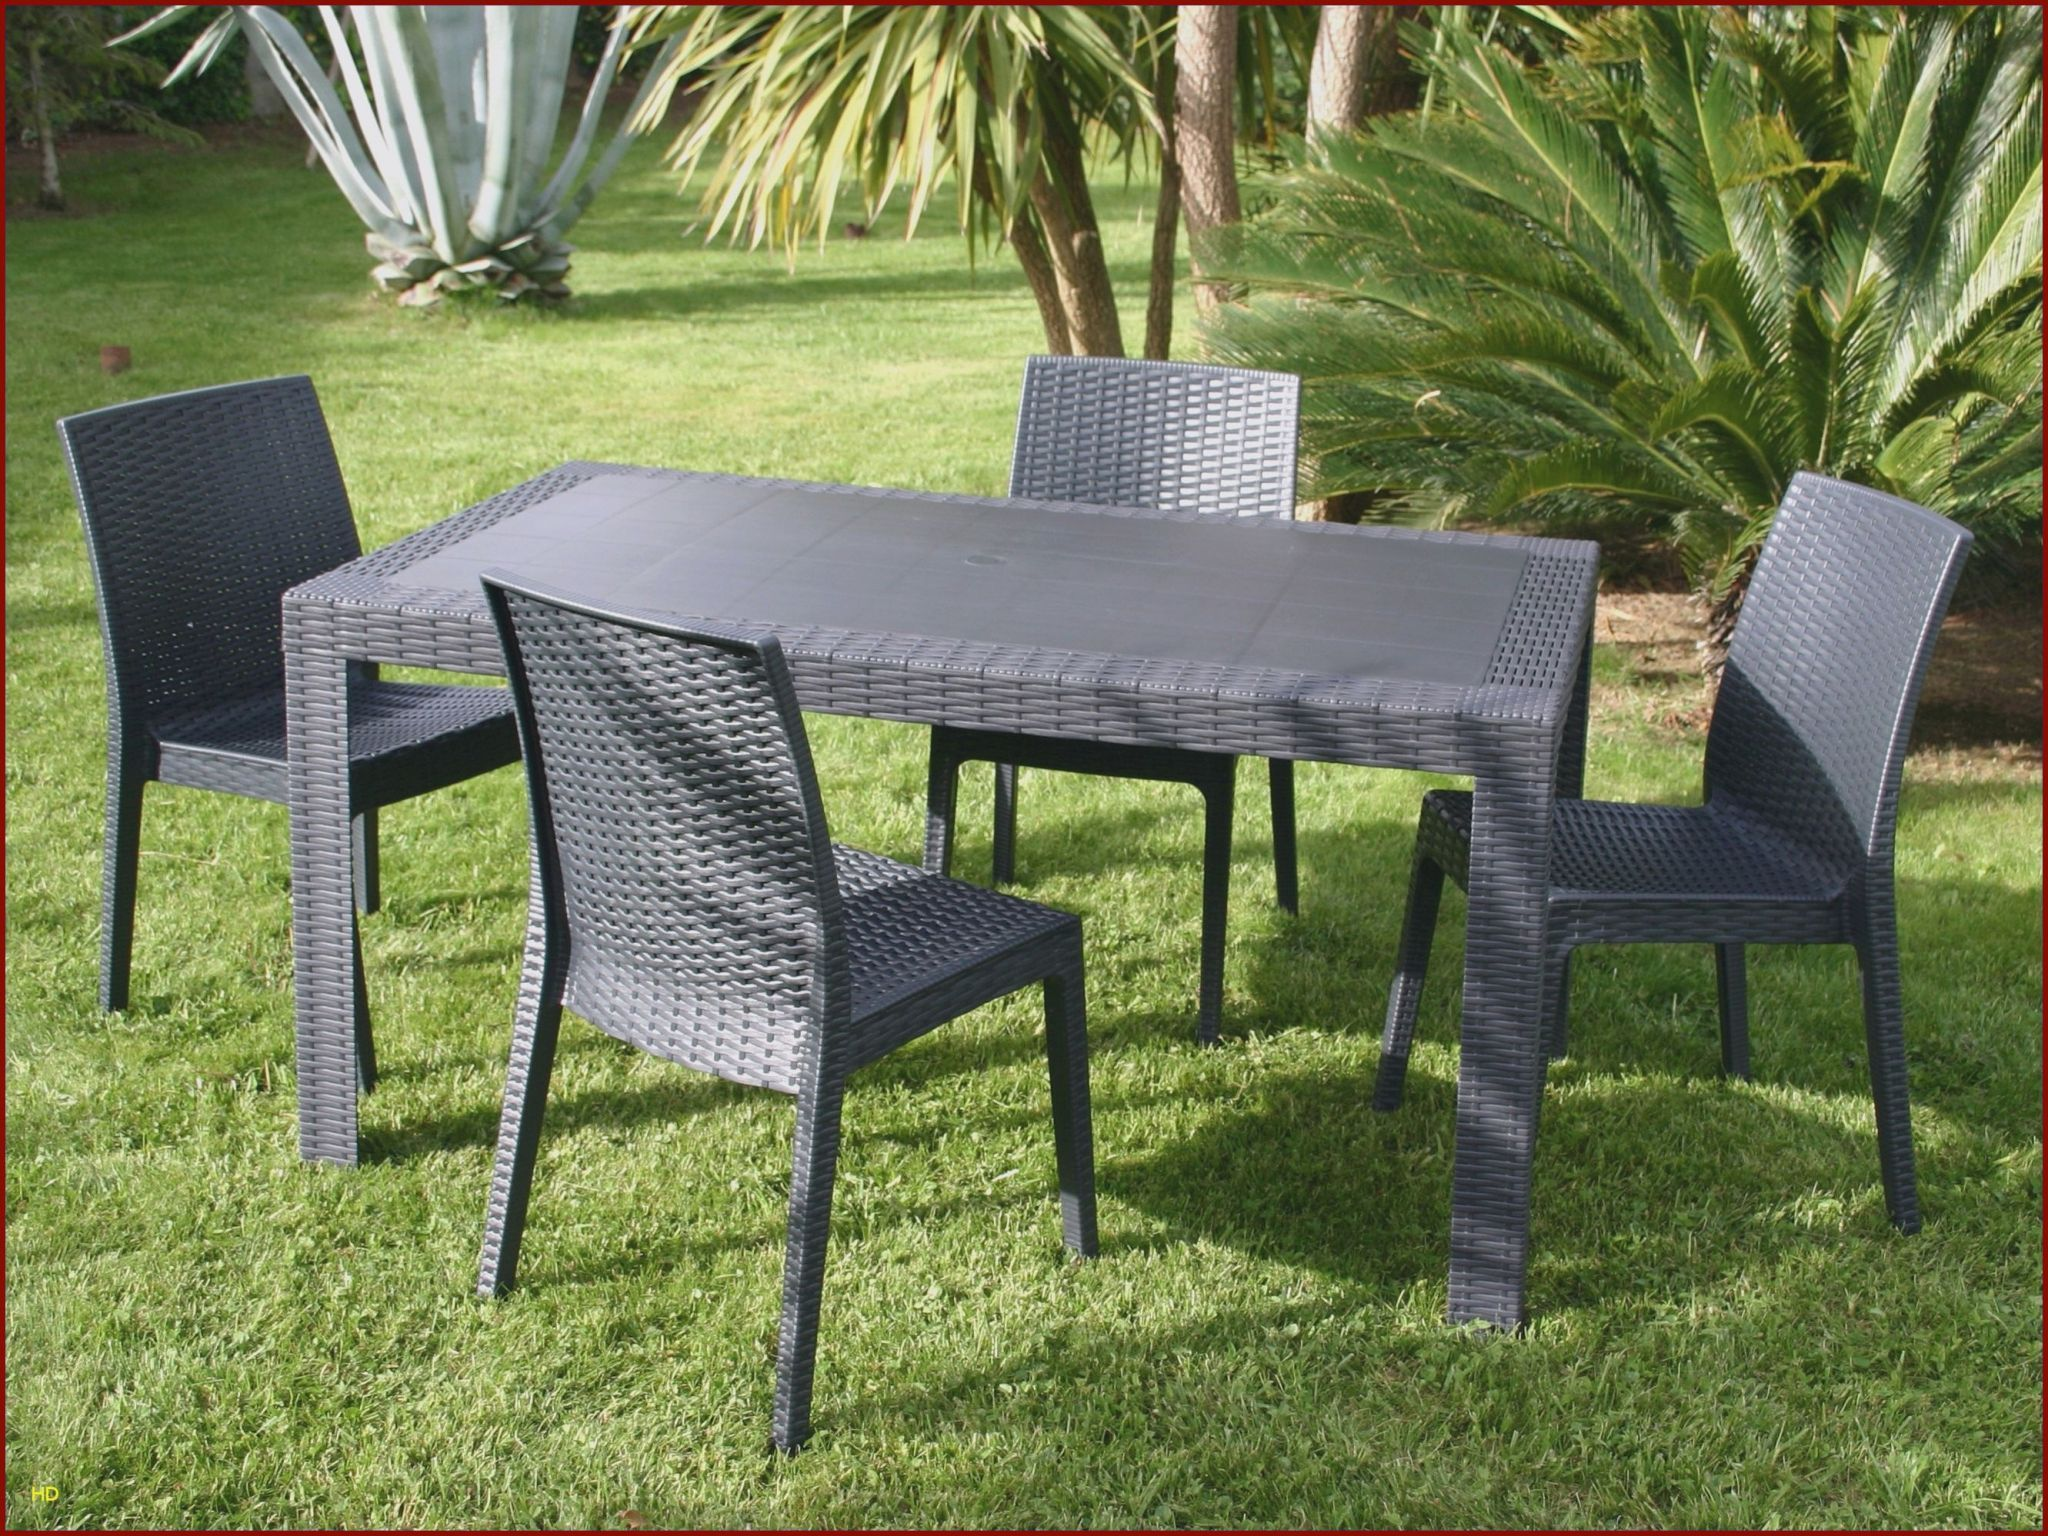 Fauteuil Jardin Metal Élégant Chaises Luxe Chaise Ice 0d Table Jardin Resine Lovely Of 29 Best Of Fauteuil Jardin Metal